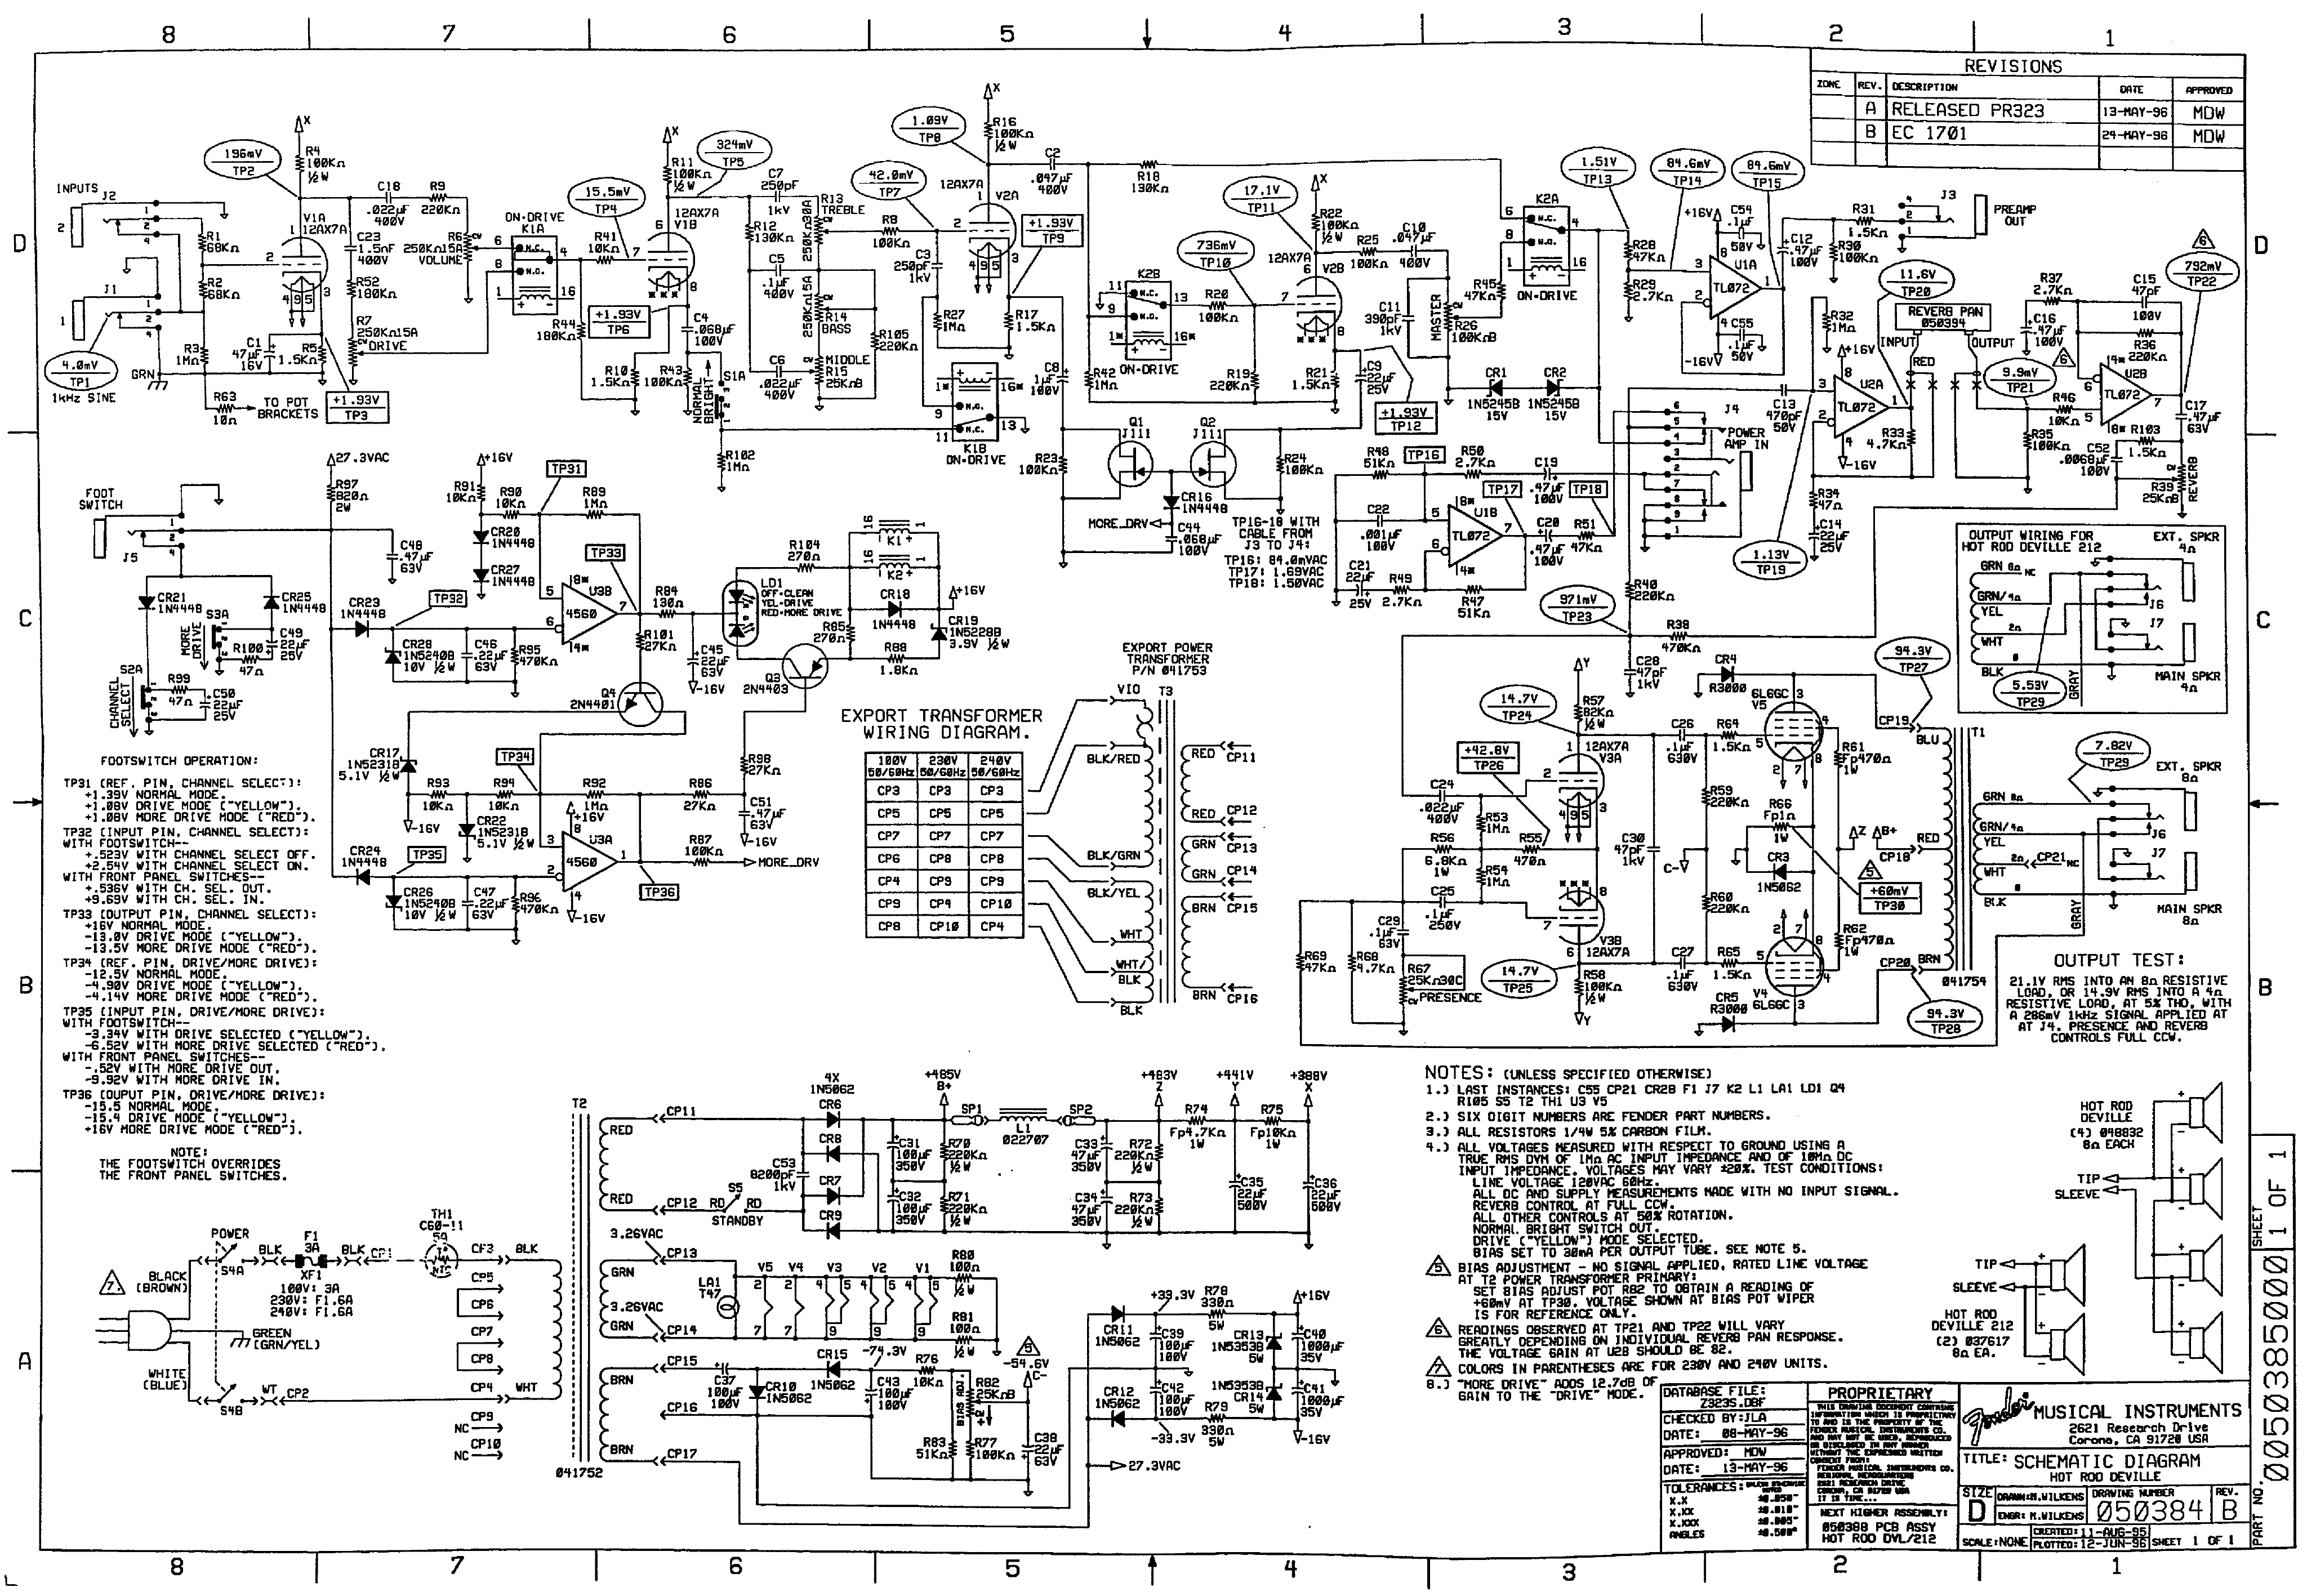 Modern 4age 16v Wiring Diagram Collection - Electrical System Block ...